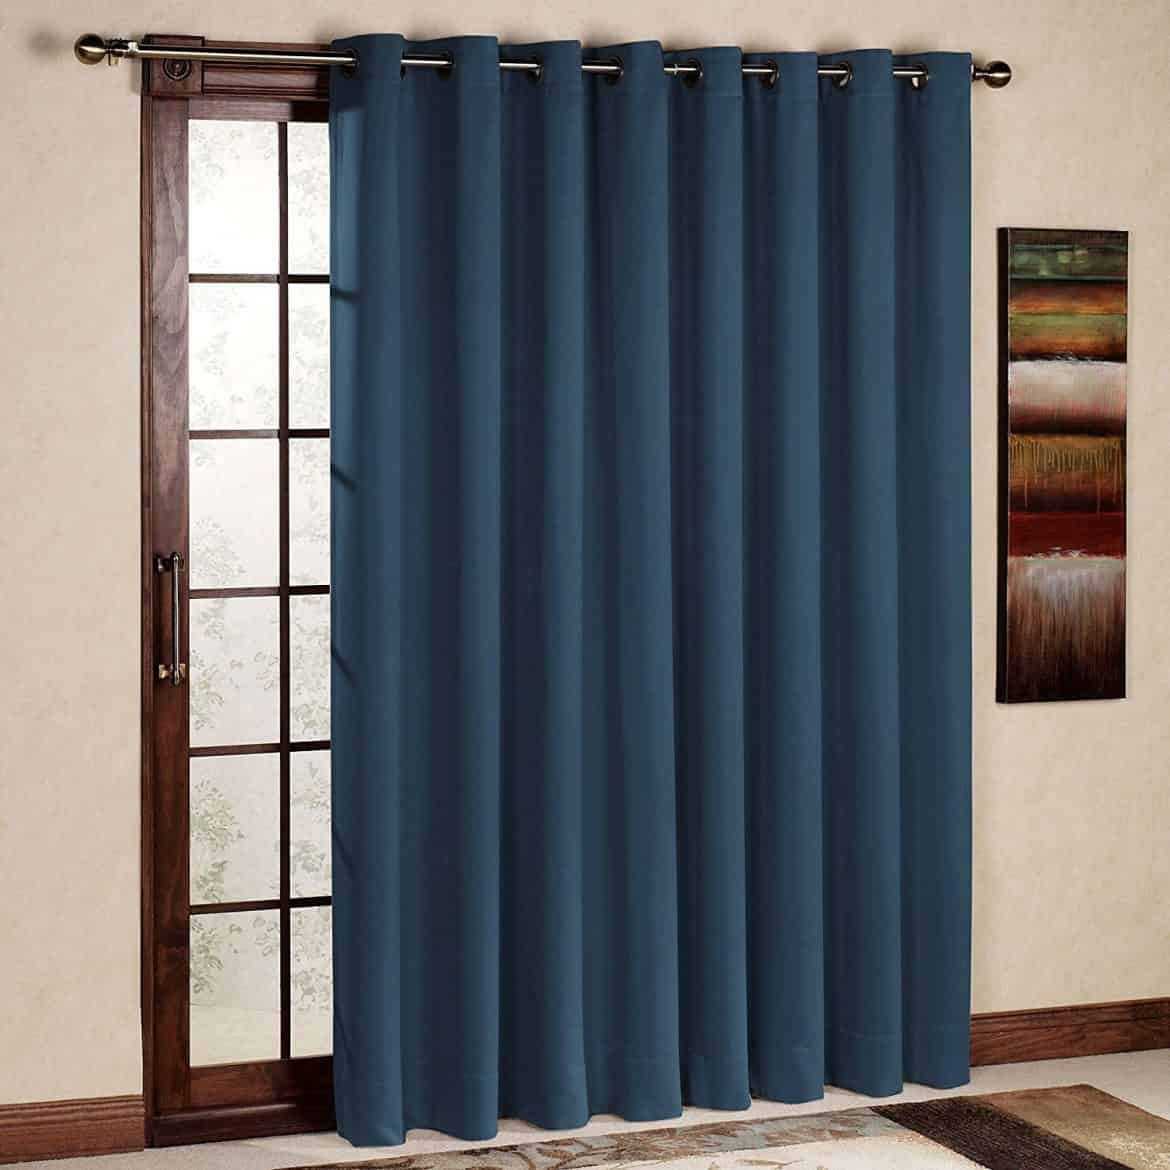 Window Treatments For Sliding Glass Doors 2020 Ideas Tips Insulated Curtains Door Coverings Glass Door Curtains